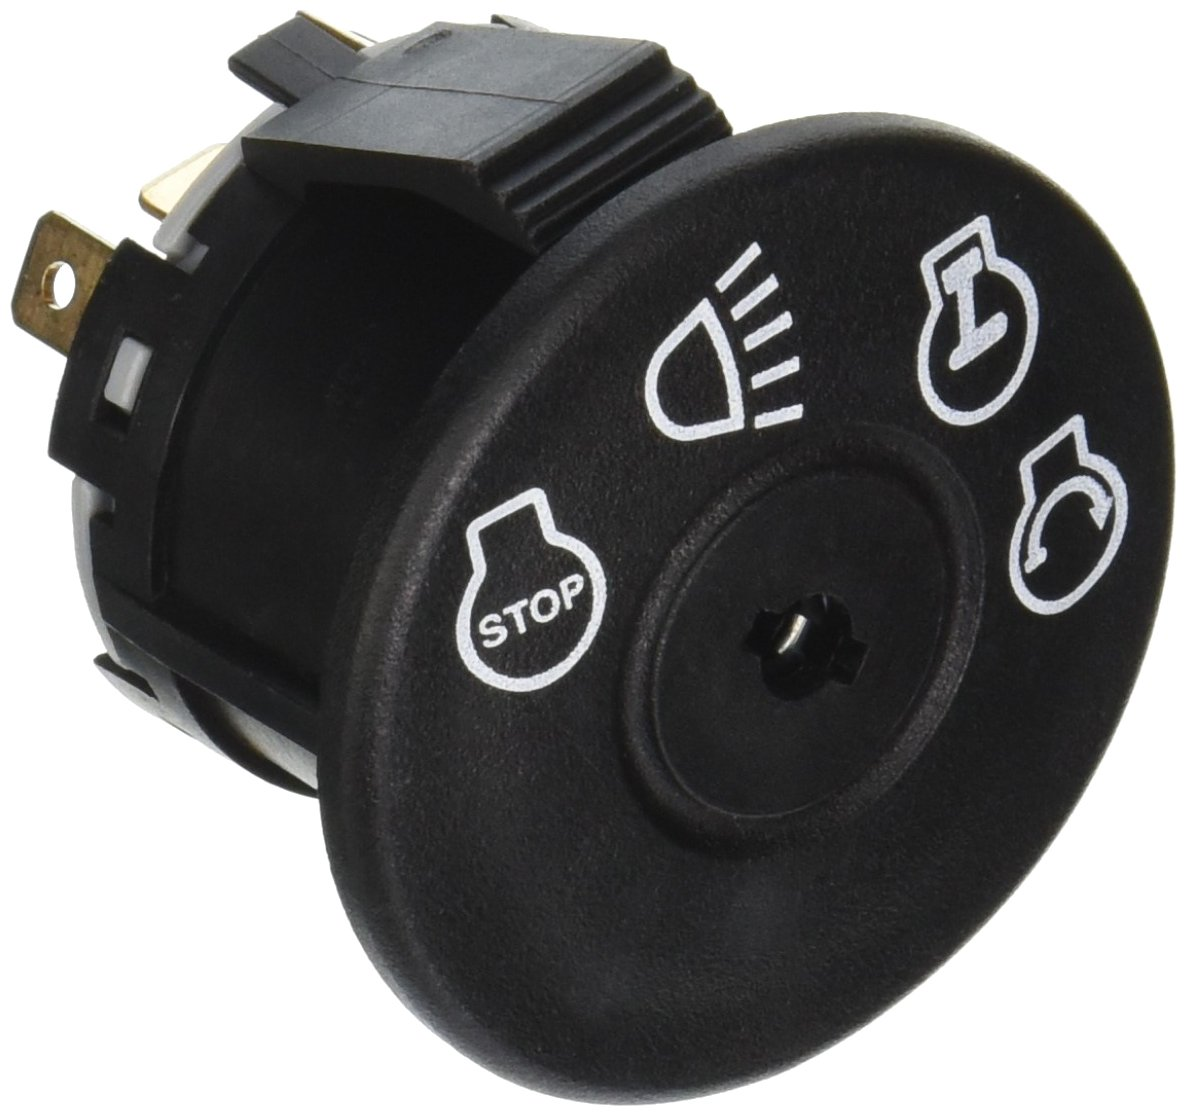 IGNITION STARTER KEY SWITCH for Murray 94762 94762MA 94762MAX Tractors Mowers